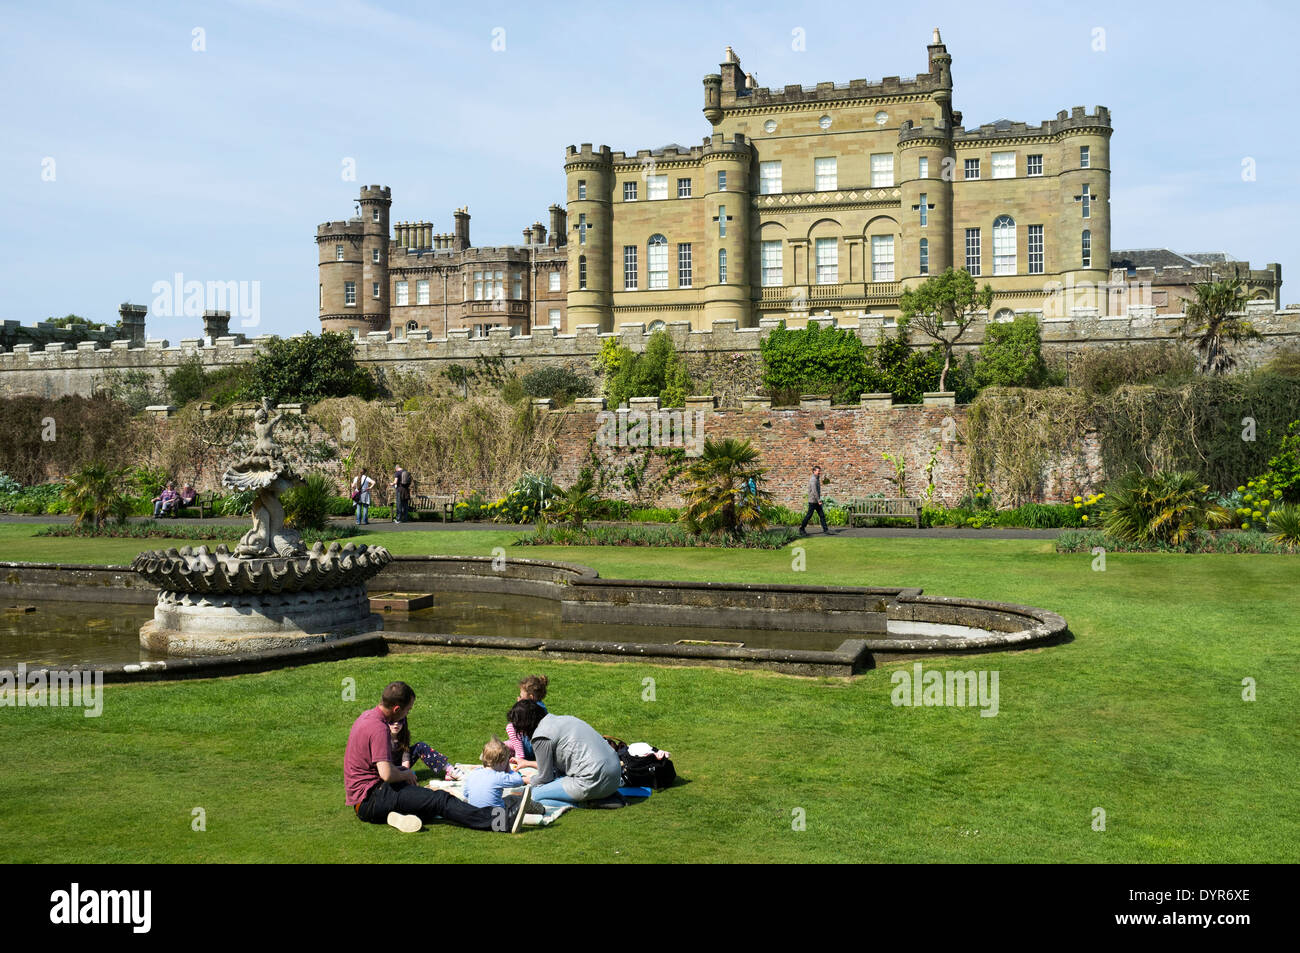 Family having a picnic in the grounds of Culzean Castle, Ayrshire, Scotland, UK - Stock Image